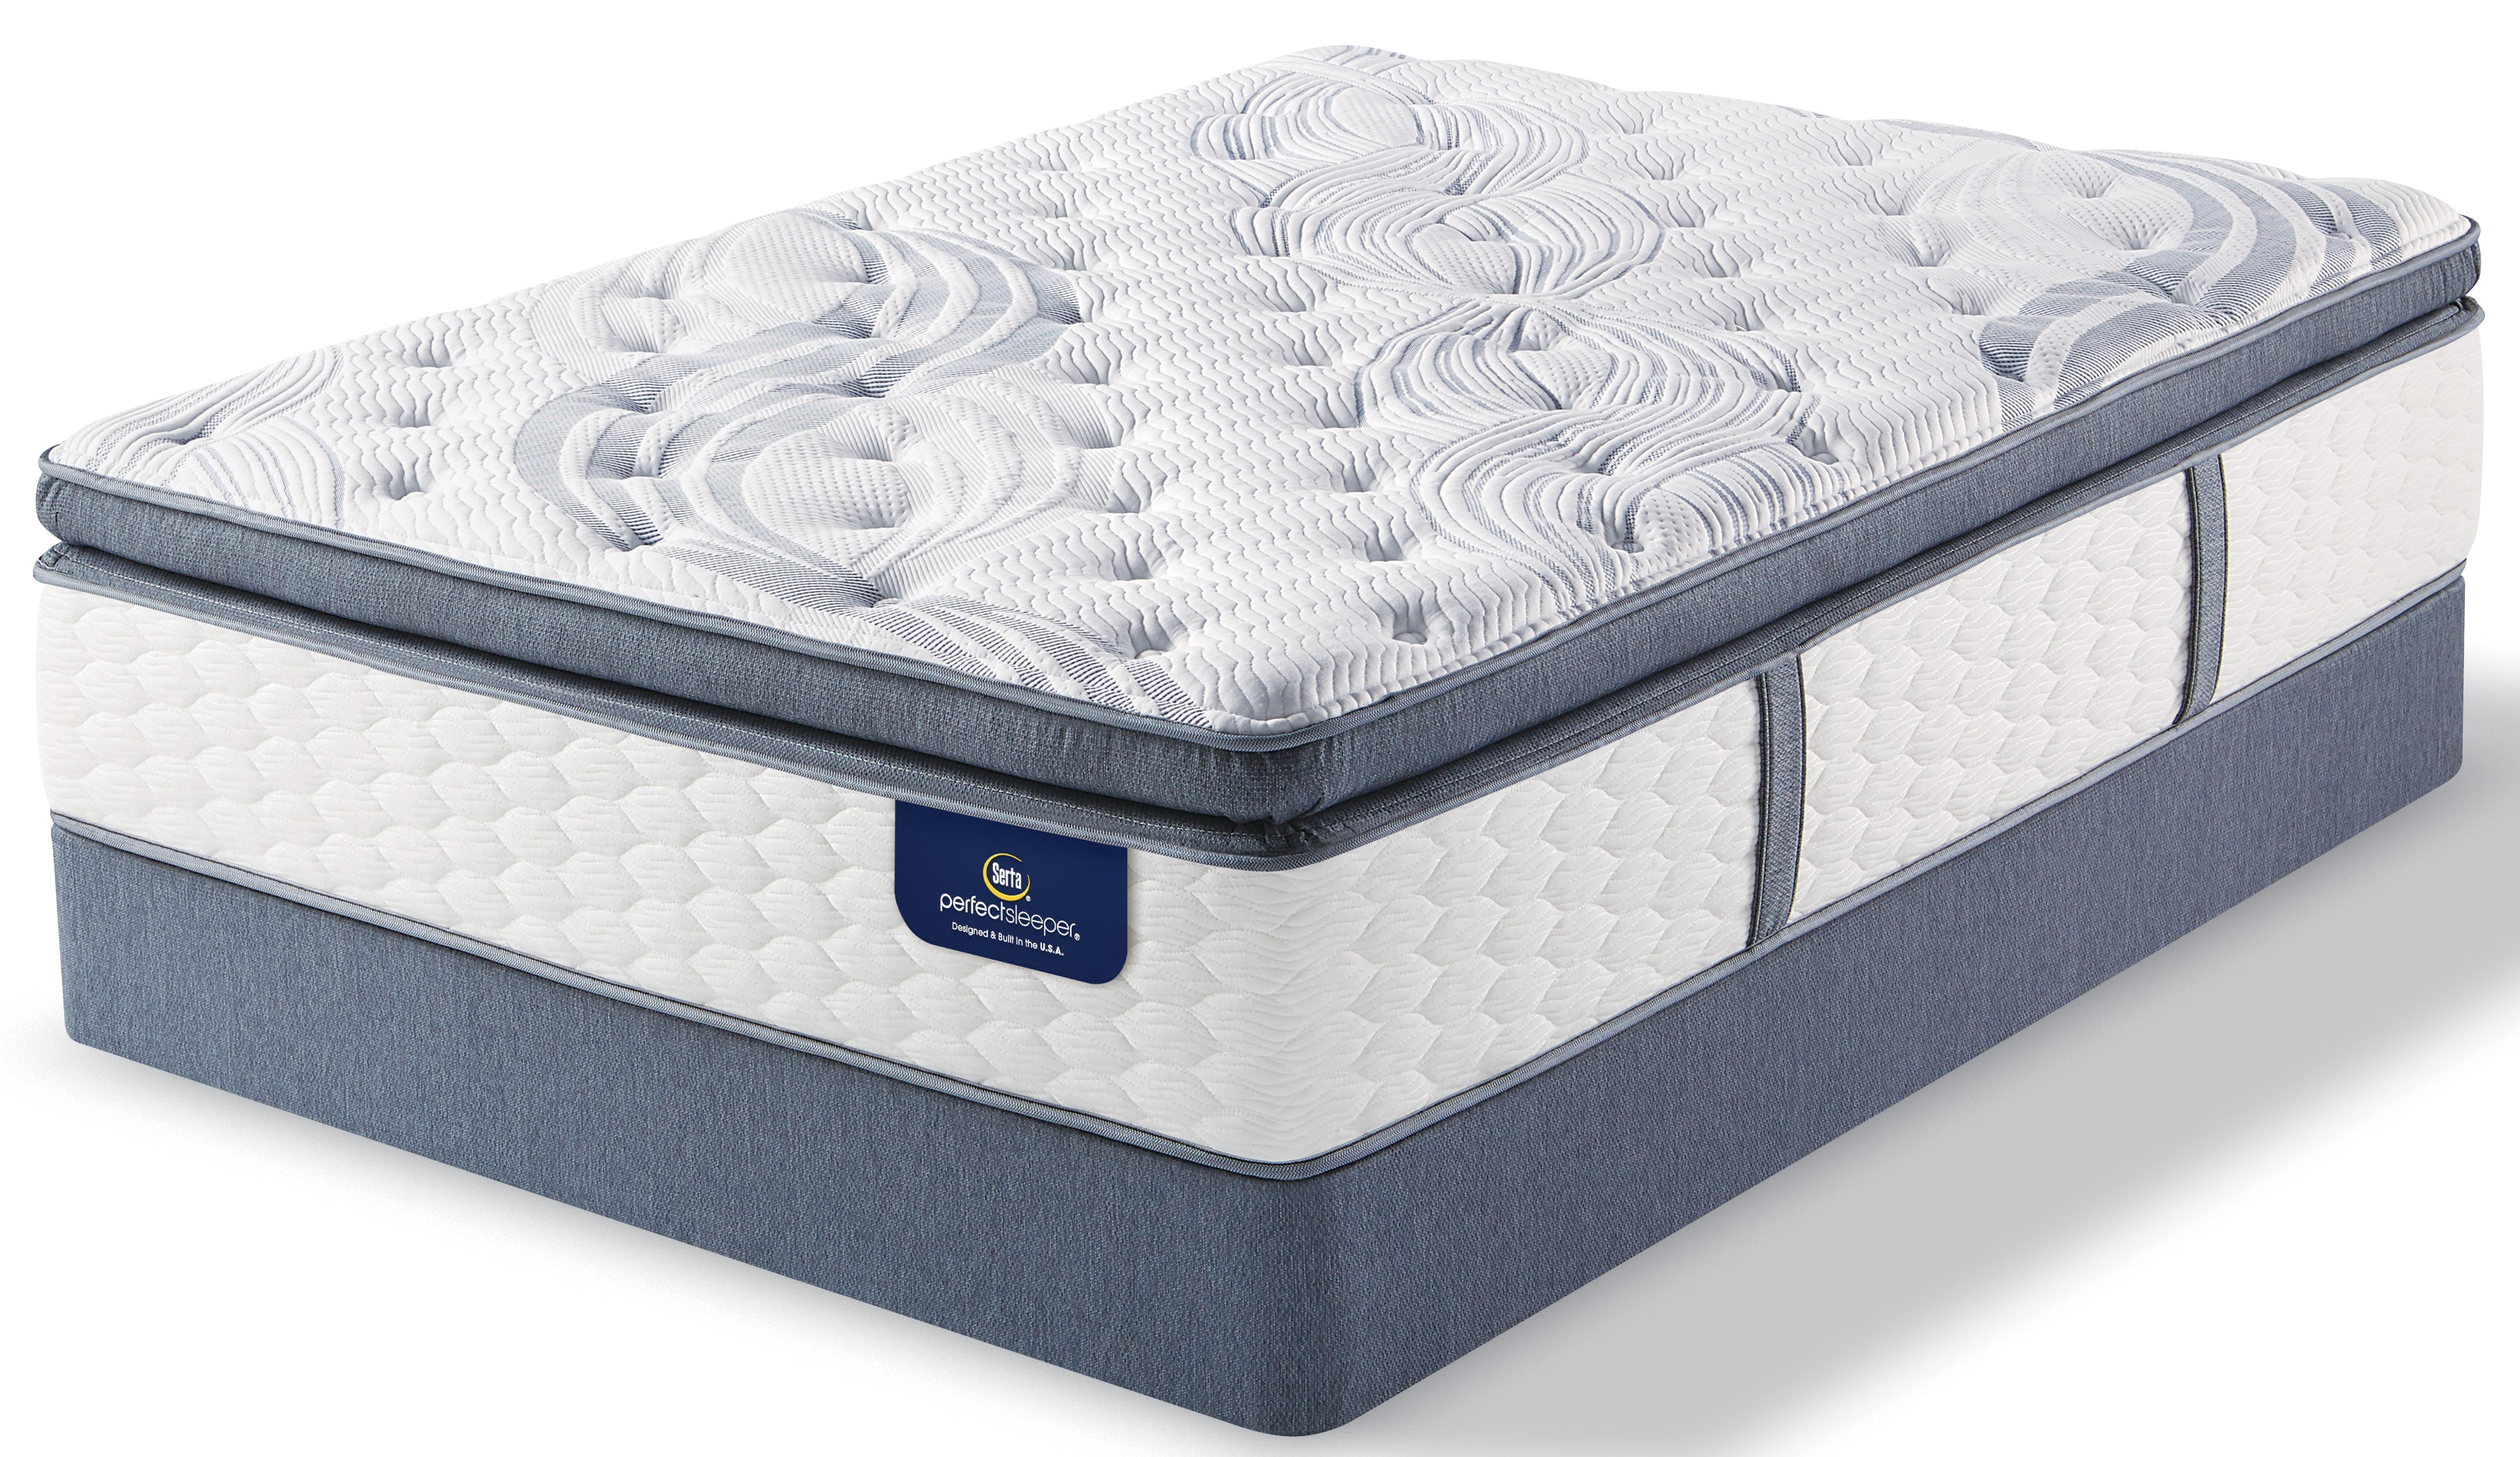 Luxury Perfect Sleeper Super Pillowtop Queen Mattress and Boxspring